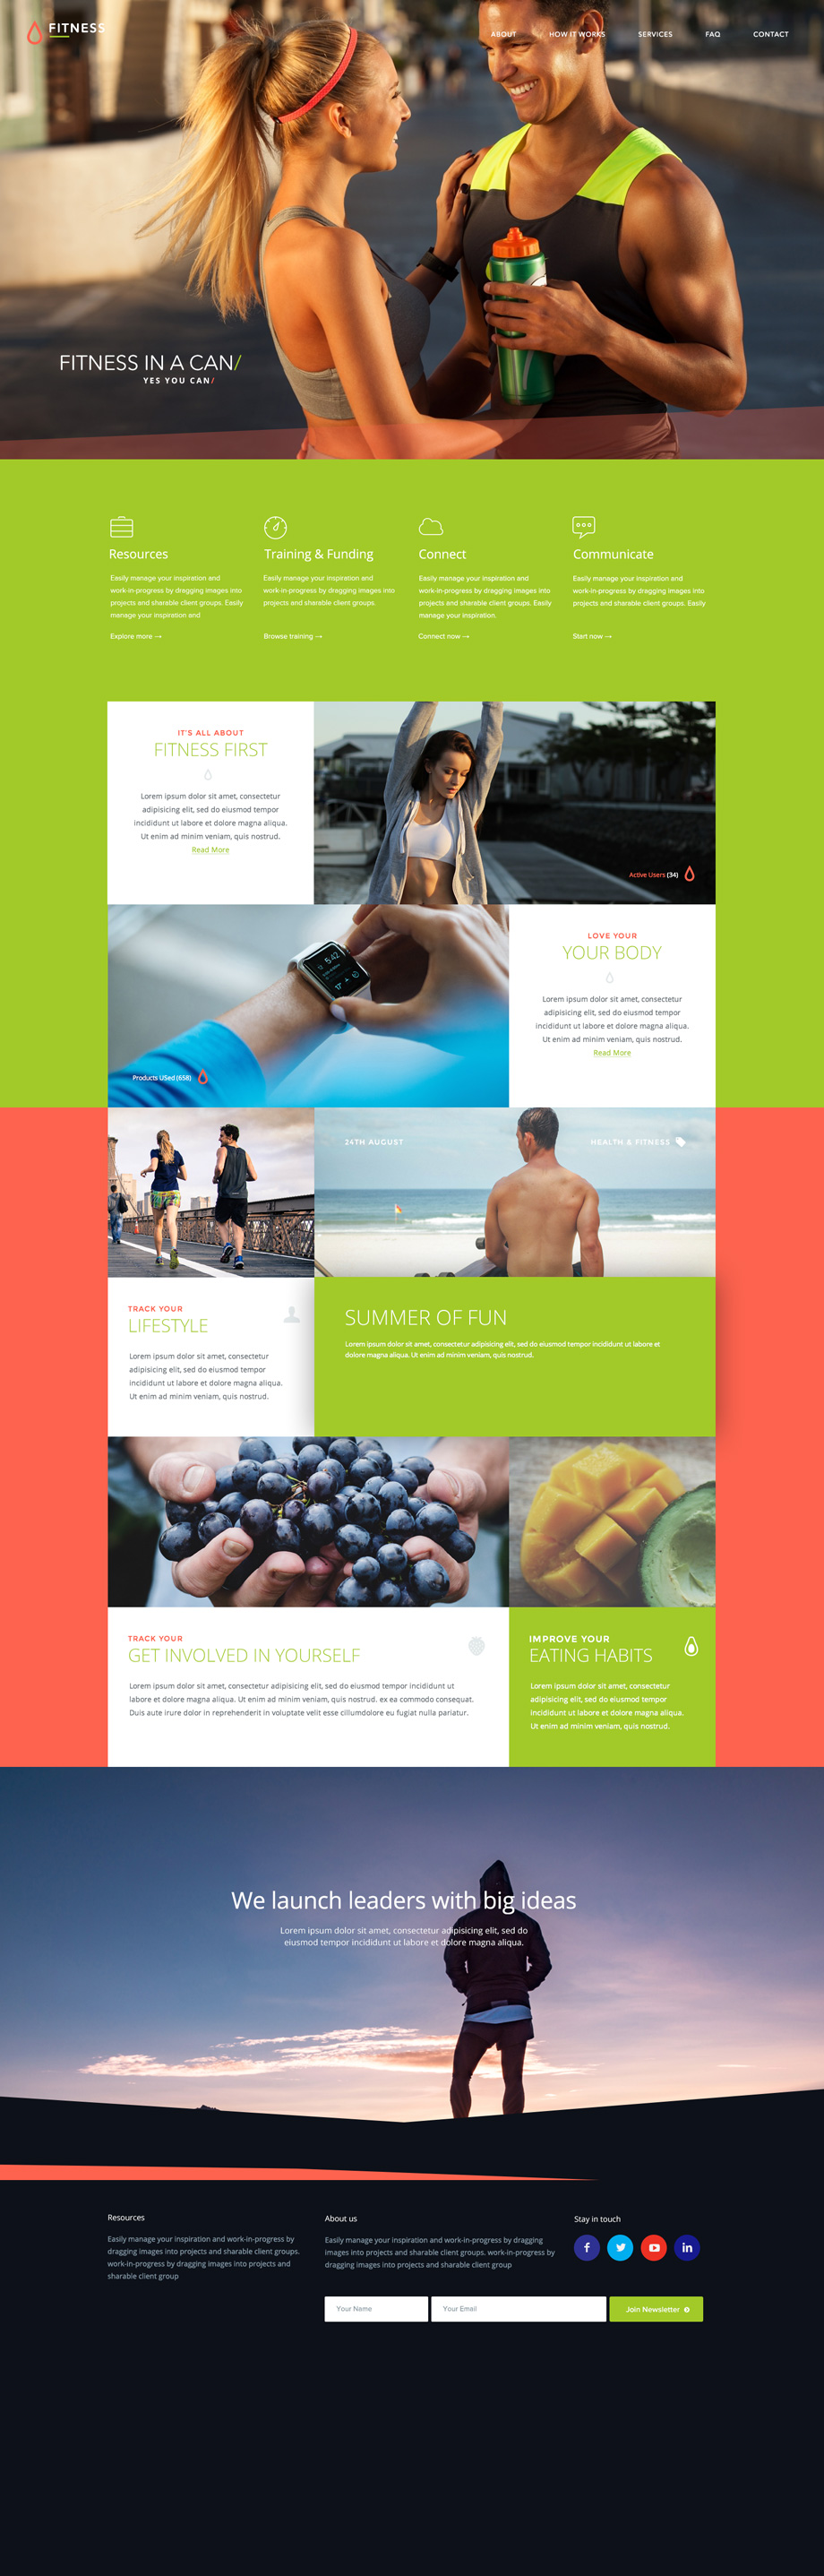 Fitness free Photoshop PSD template - BlazRobar com